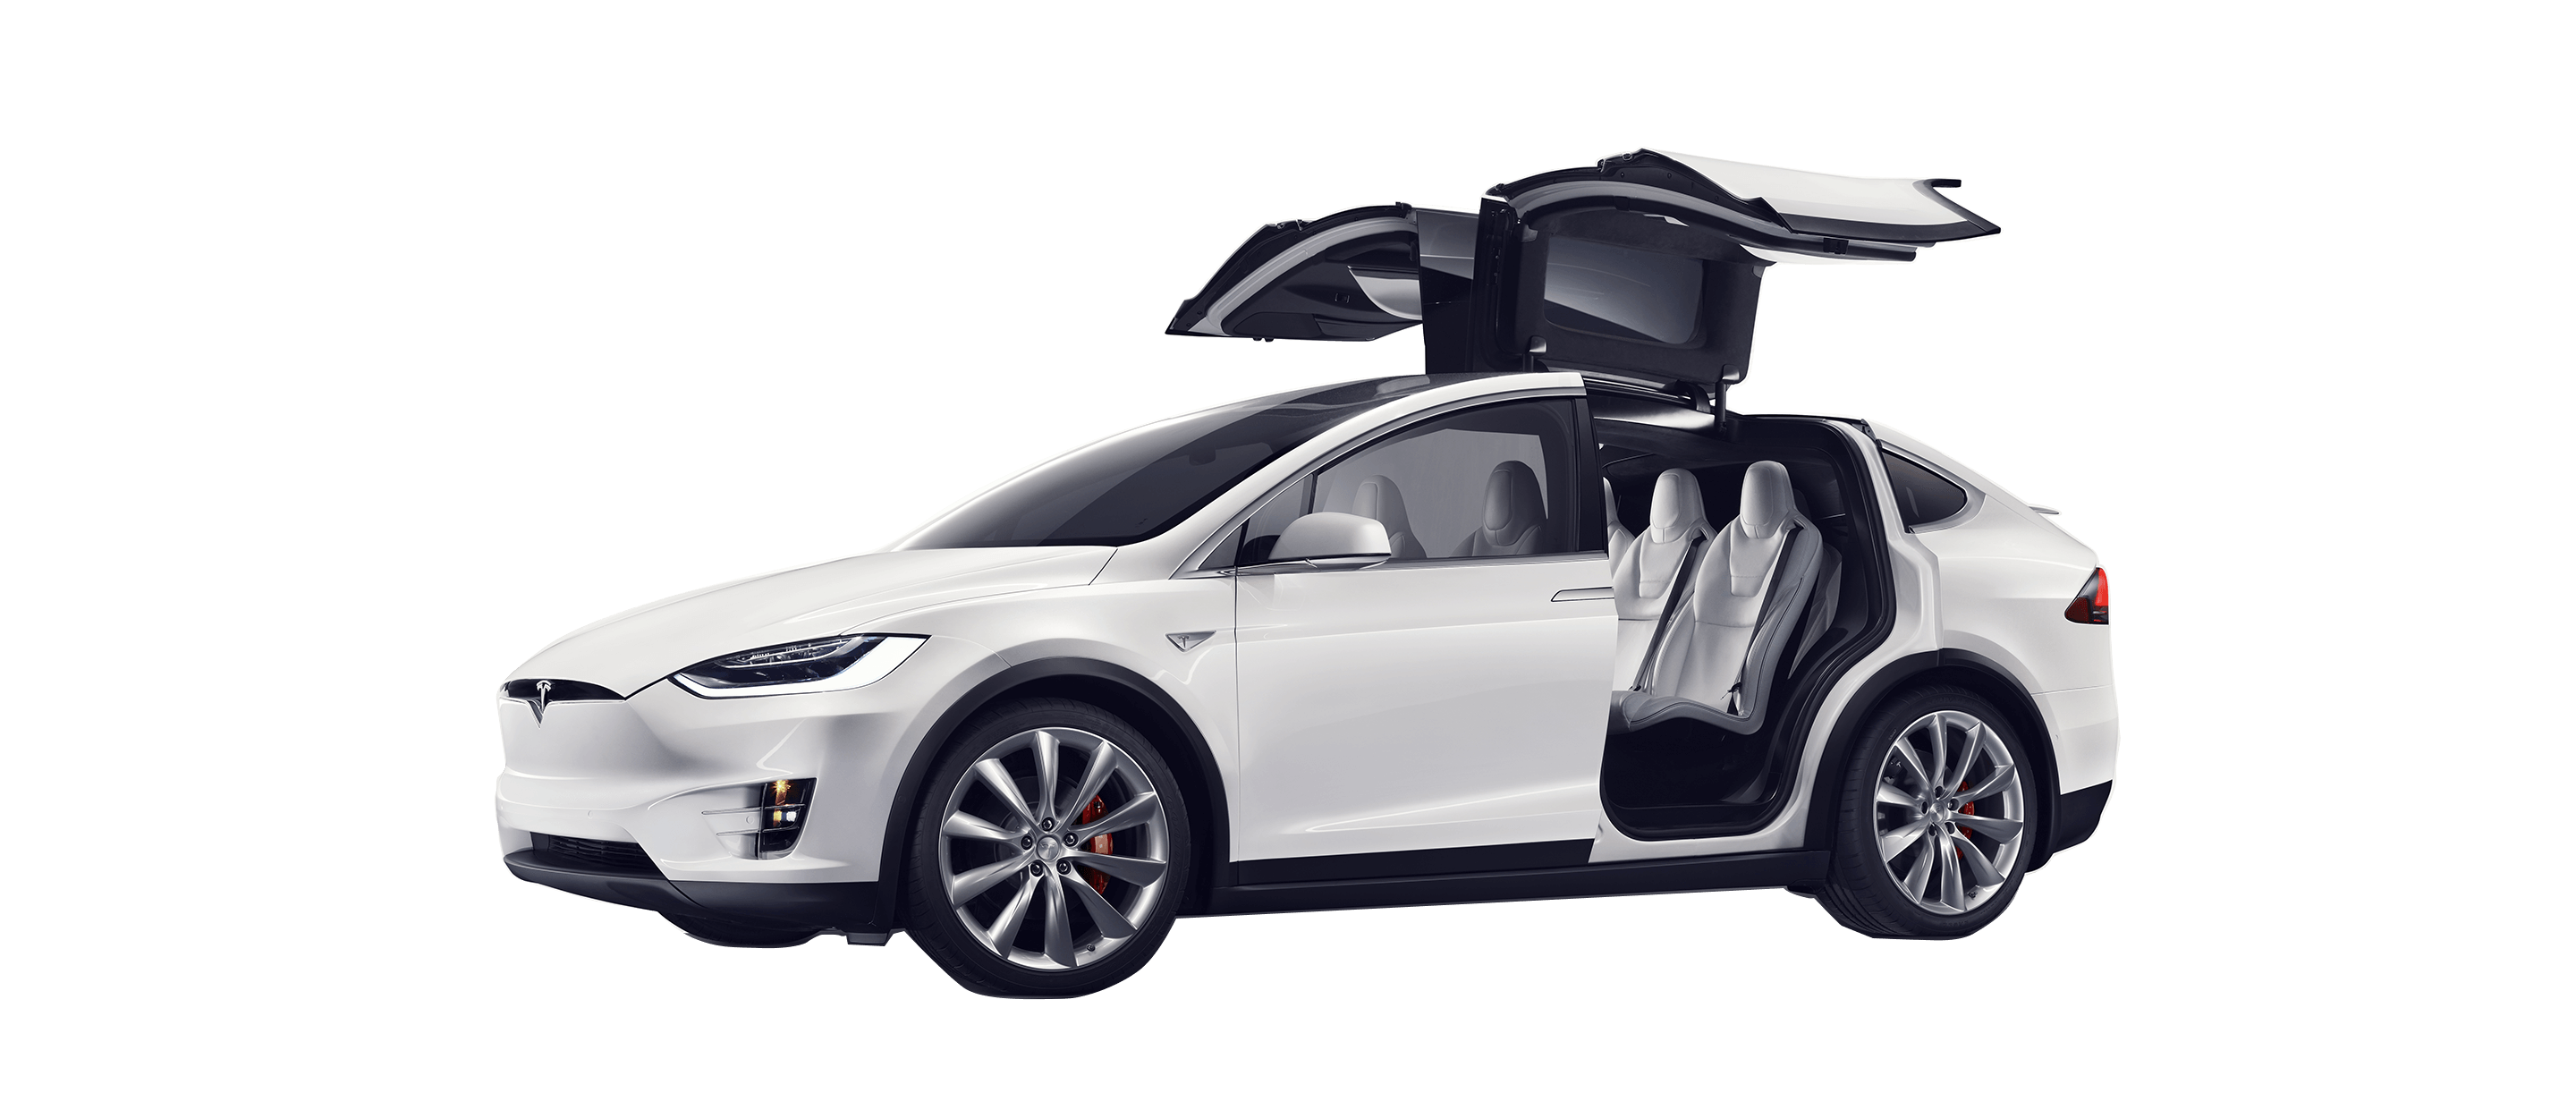 Tesla car clipart vector free library Tesla Model X transparent PNG - StickPNG vector free library